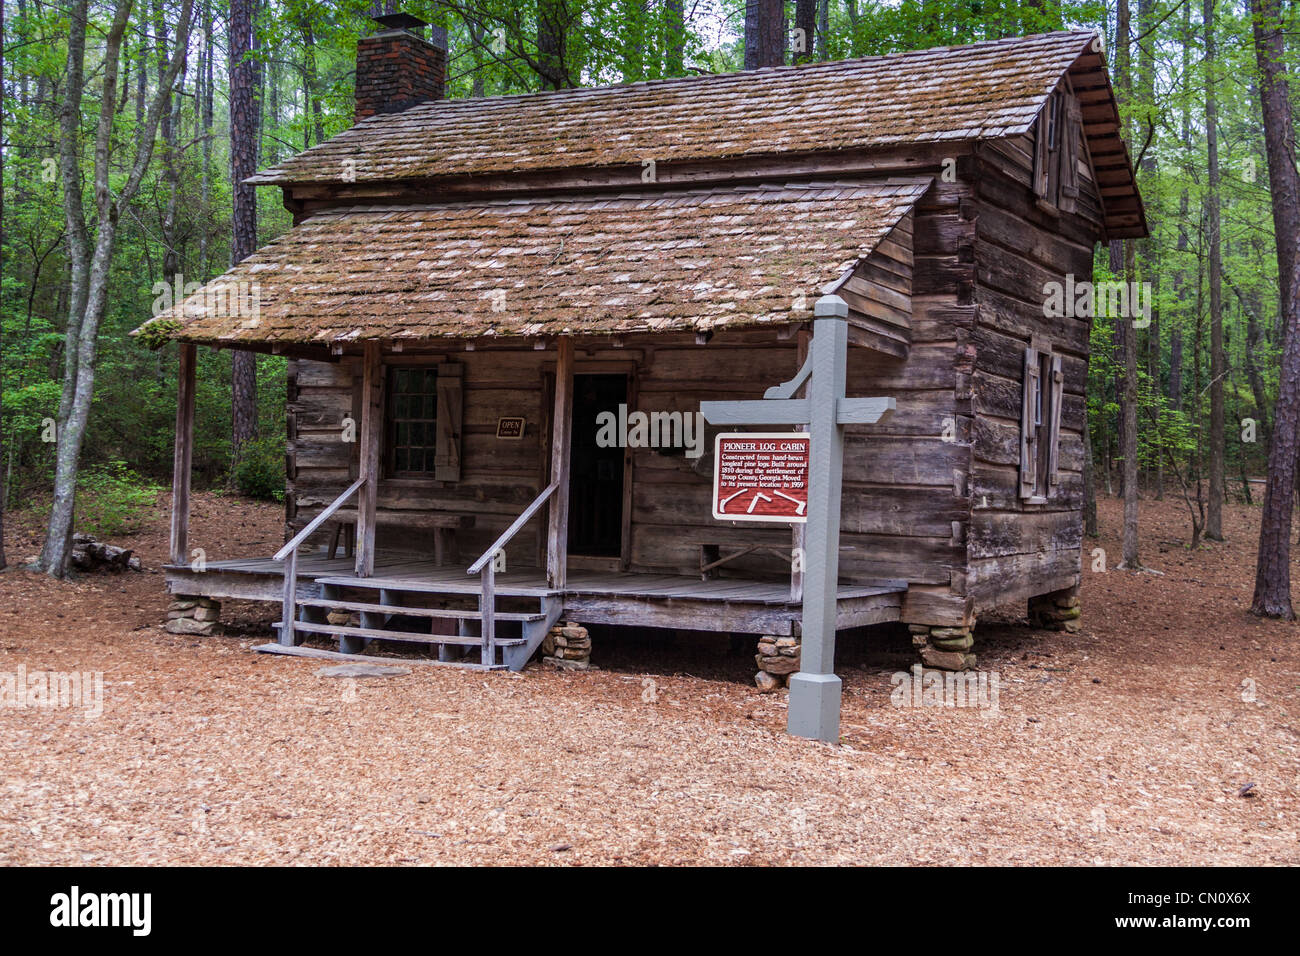 Superieur Pioneer Log Cabin At Callaway Gardens In Pine Mountain, Georgia.   Stock  Image